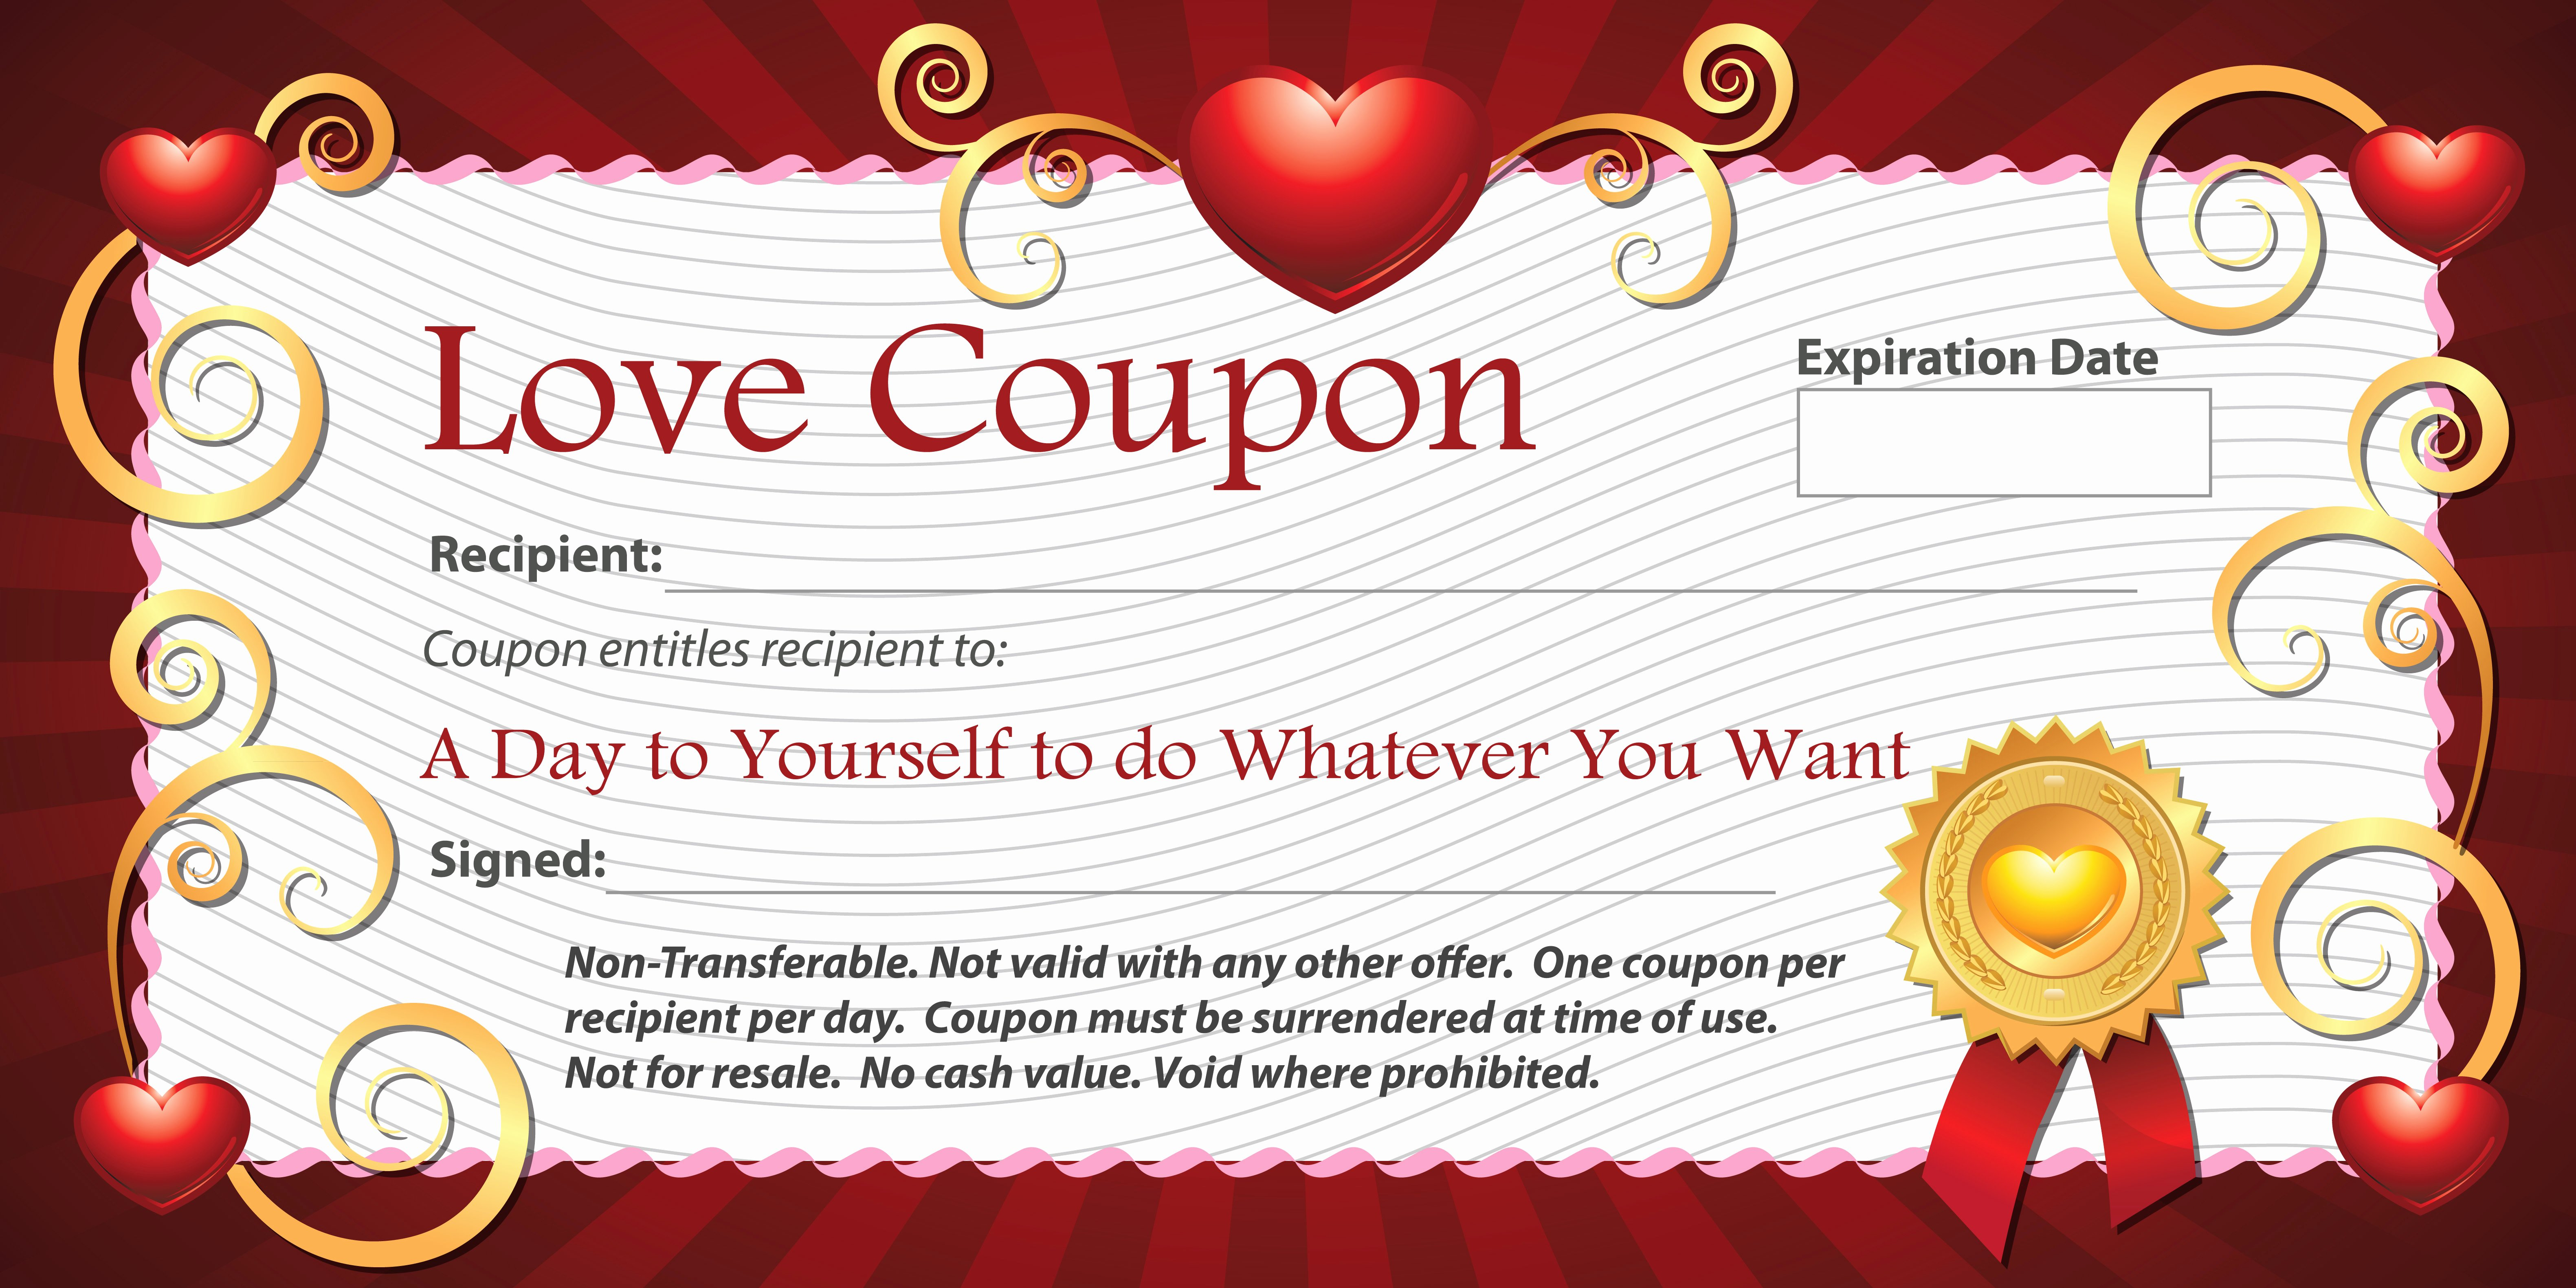 Blank Coupon Template Free Fresh 10 Personalized Gift Ideas for someone Special Collections